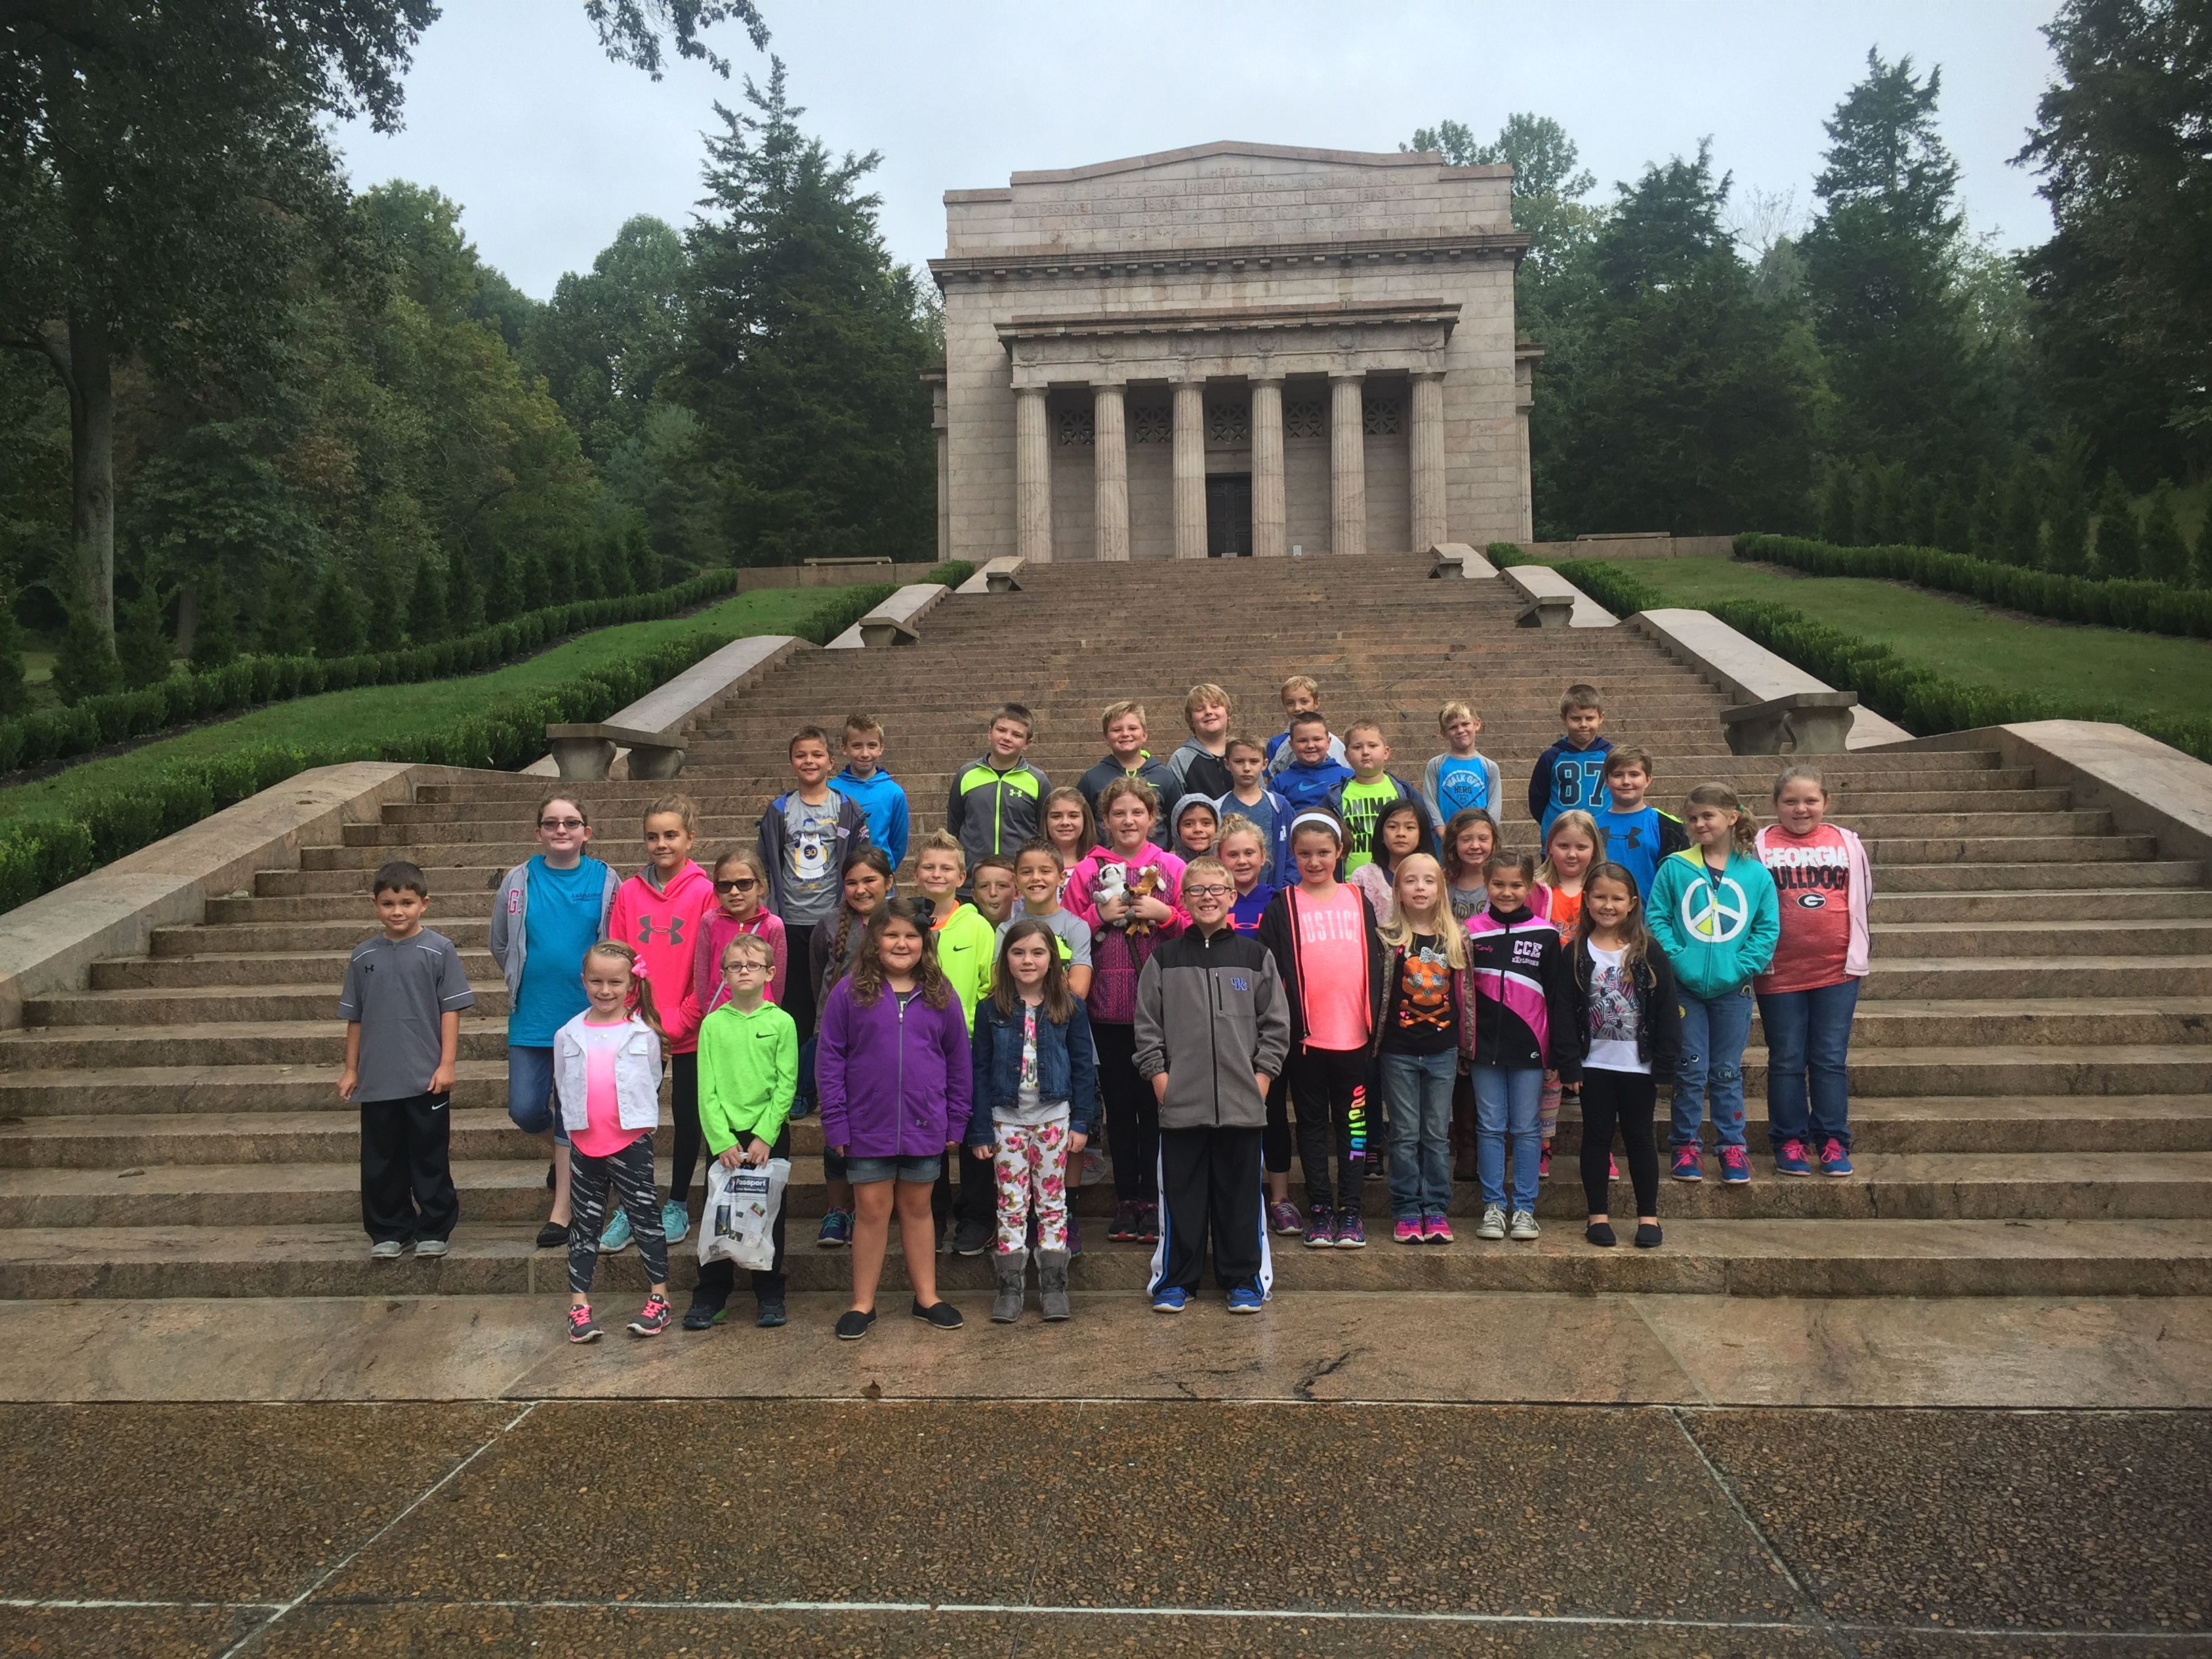 On Friday, October 7th, AES students traveled to Hodgenville, Kentucky to visit the Abraham Lincoln Birthplace National Historic Park.